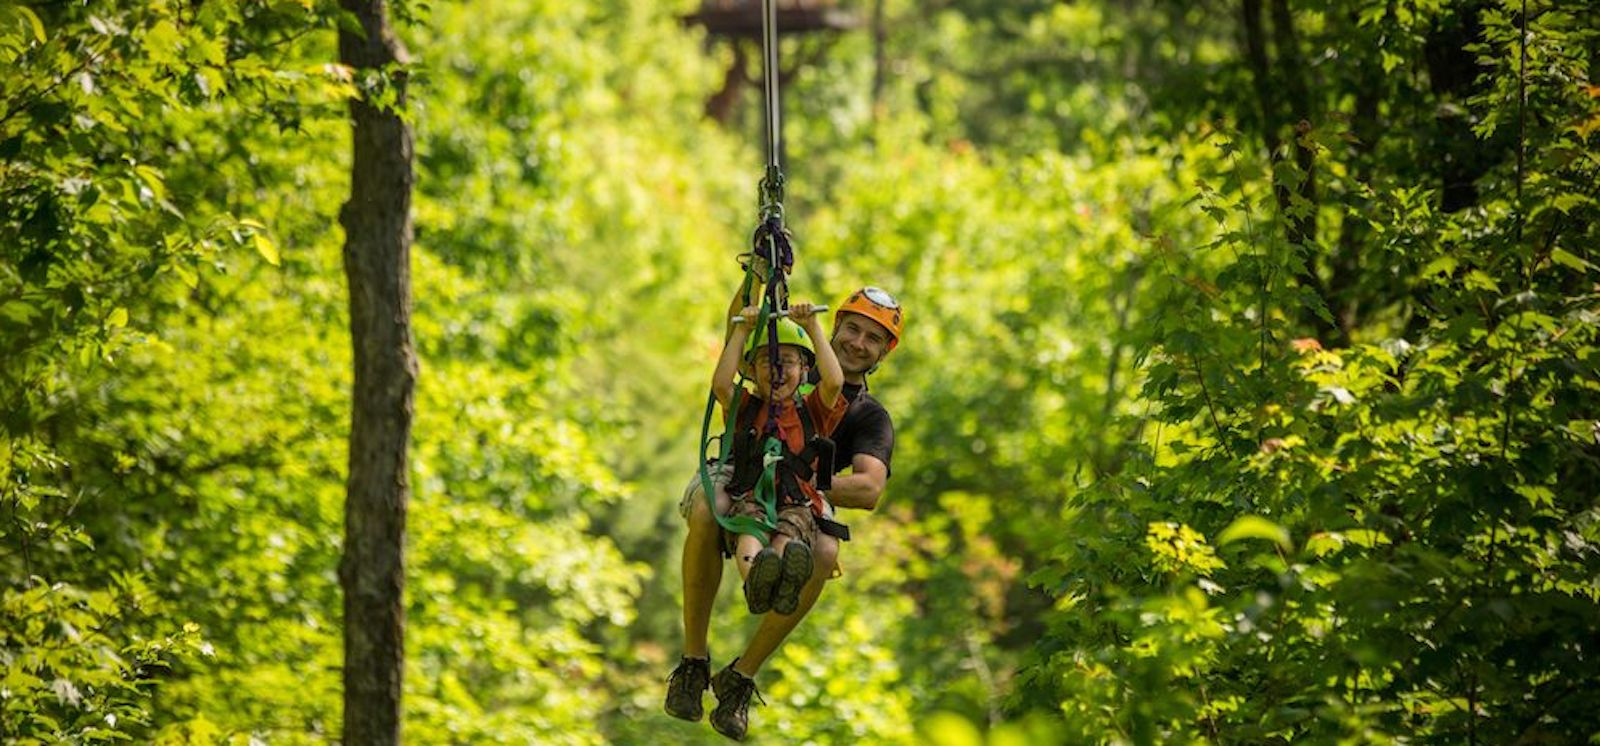 Top 4 Reasons Our Gatlinburg Ziplines Are Perfect for Family Bonding